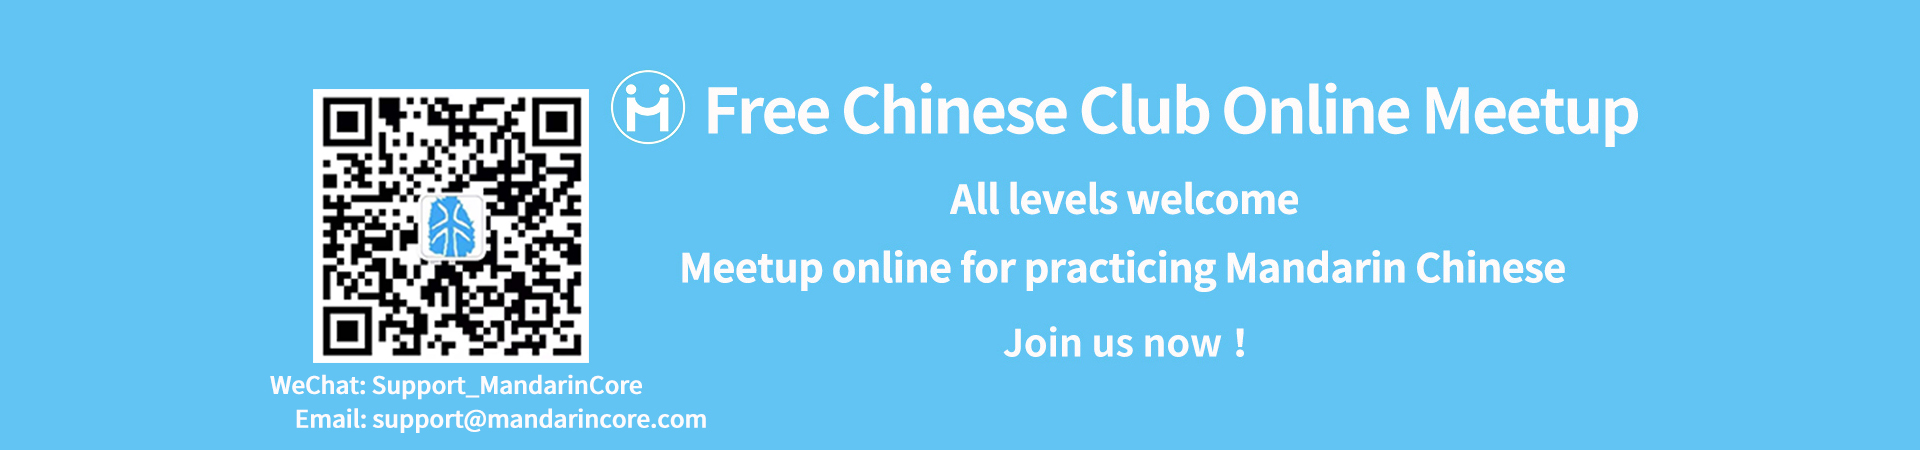 Free Chinese Club Online Meetup